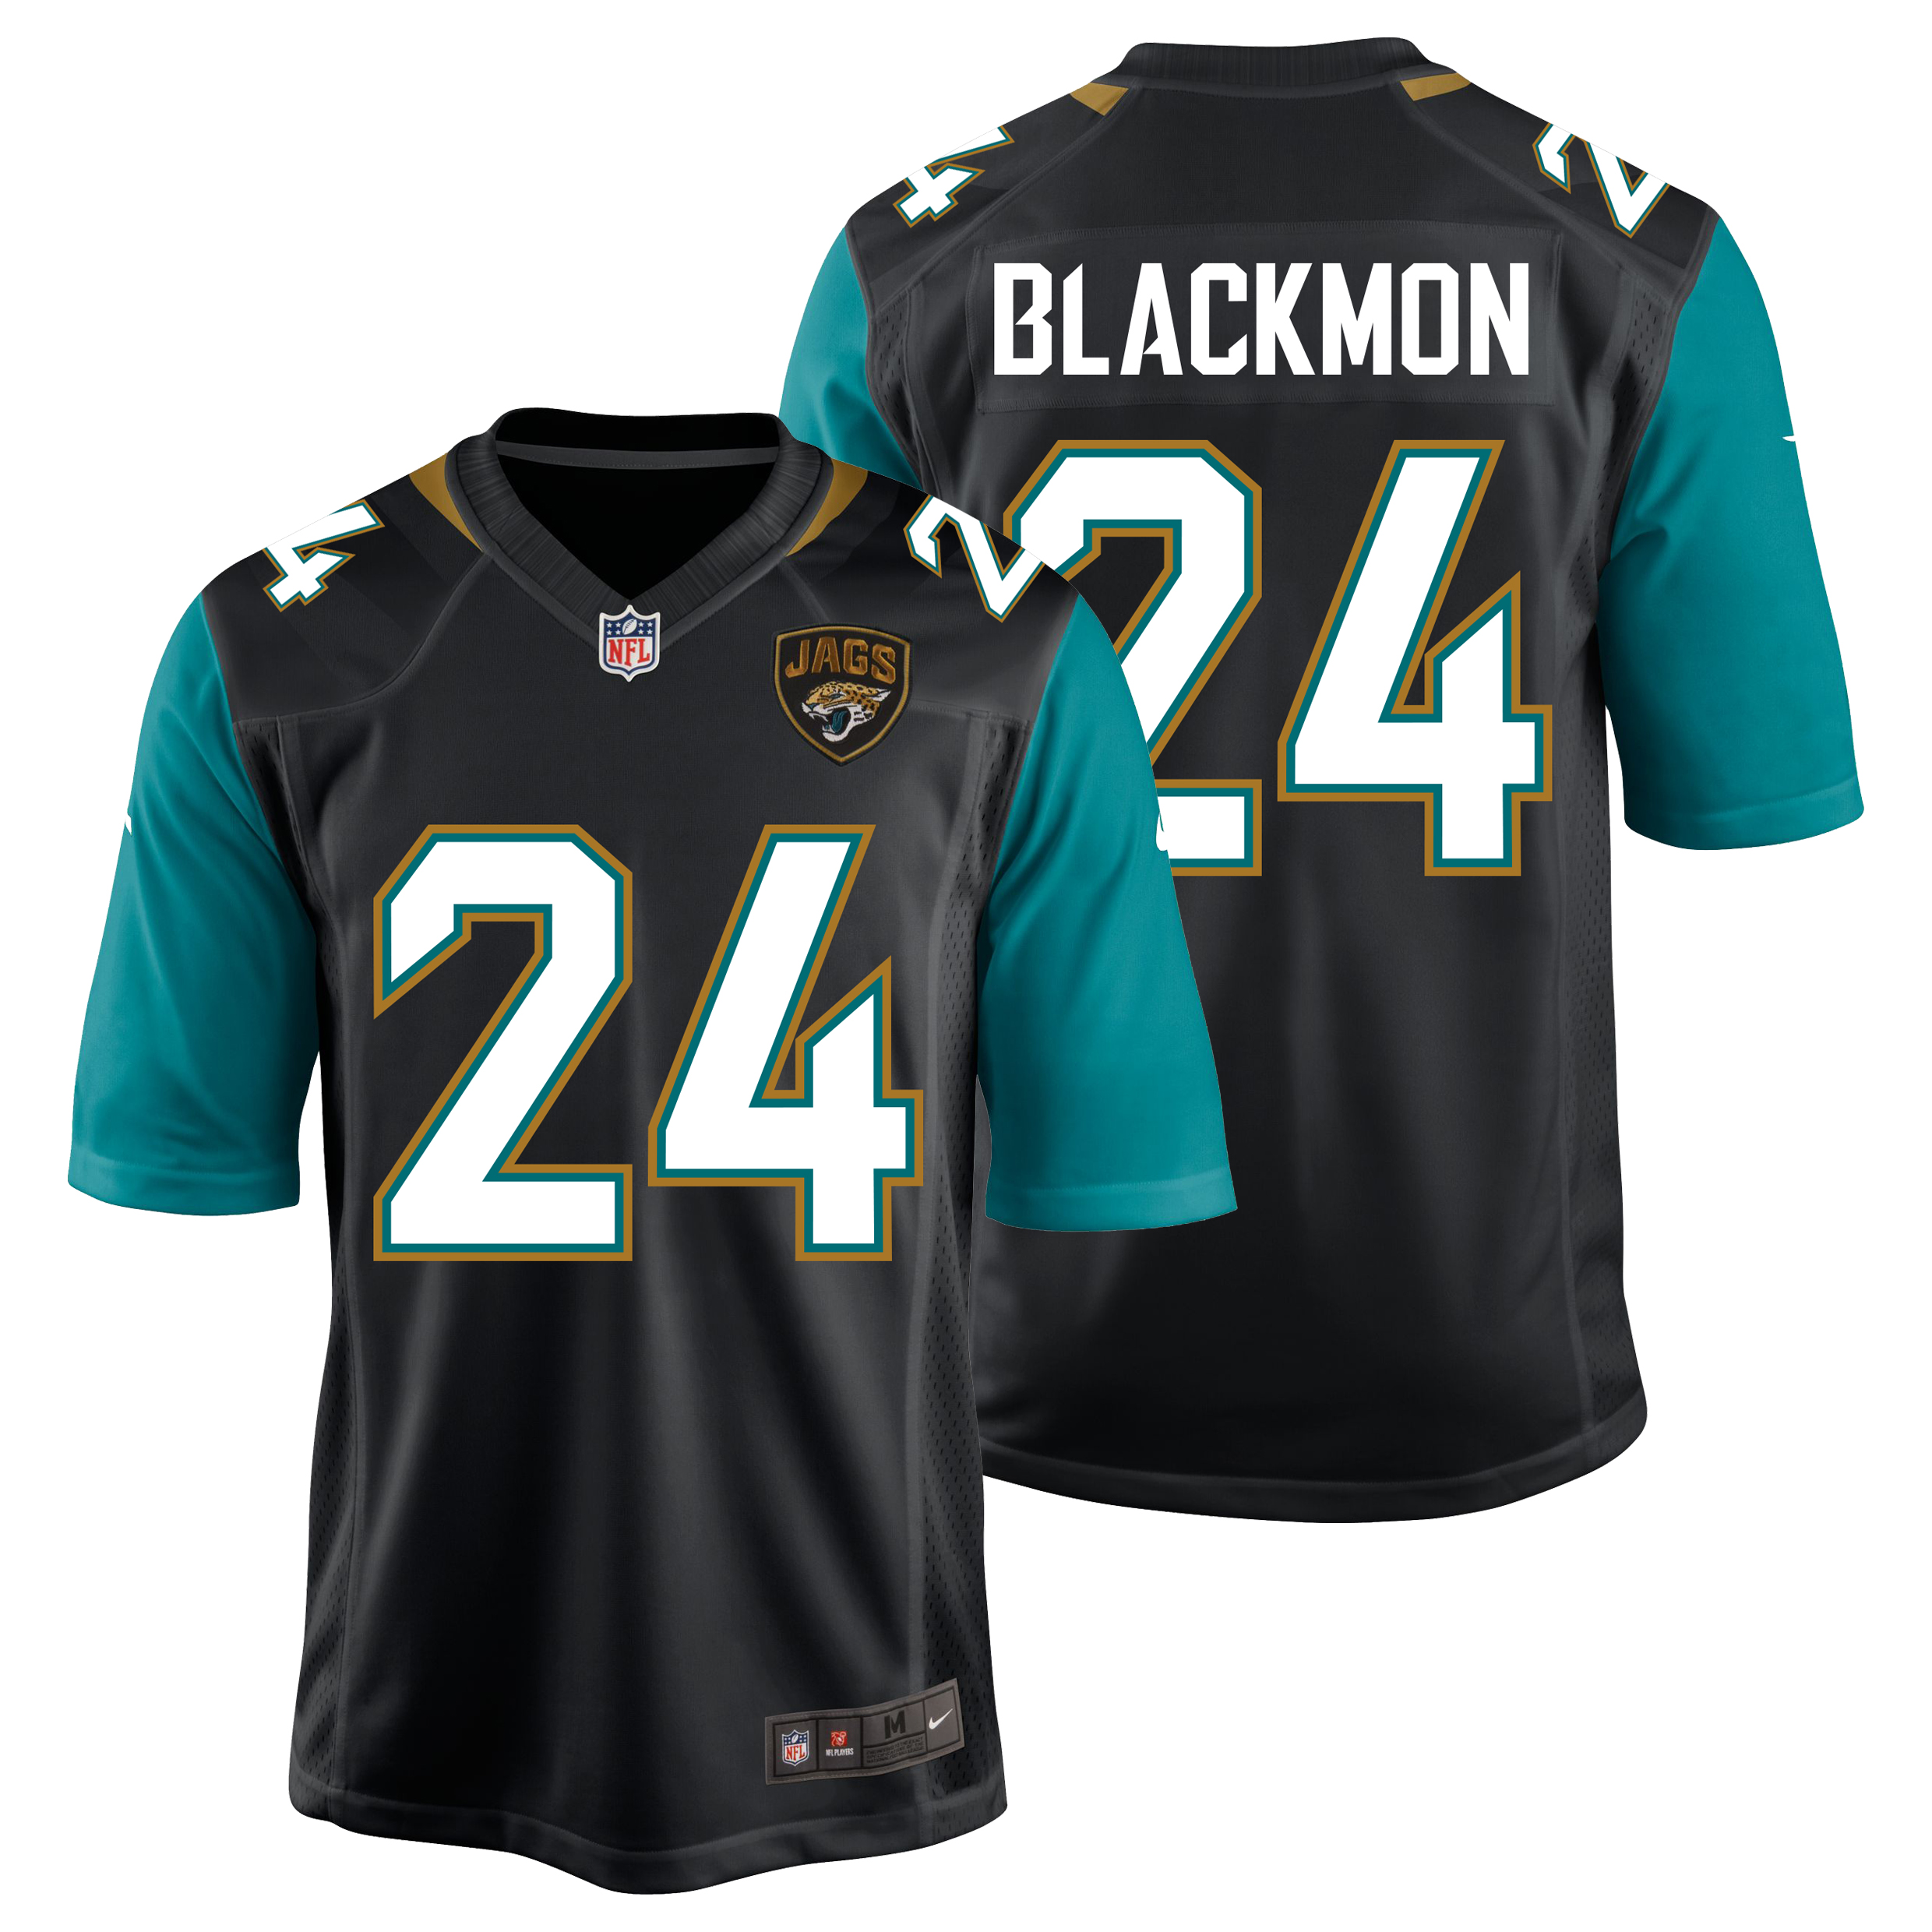 Jacksonville Jaguars Home Game Jersey - Will Blackmon